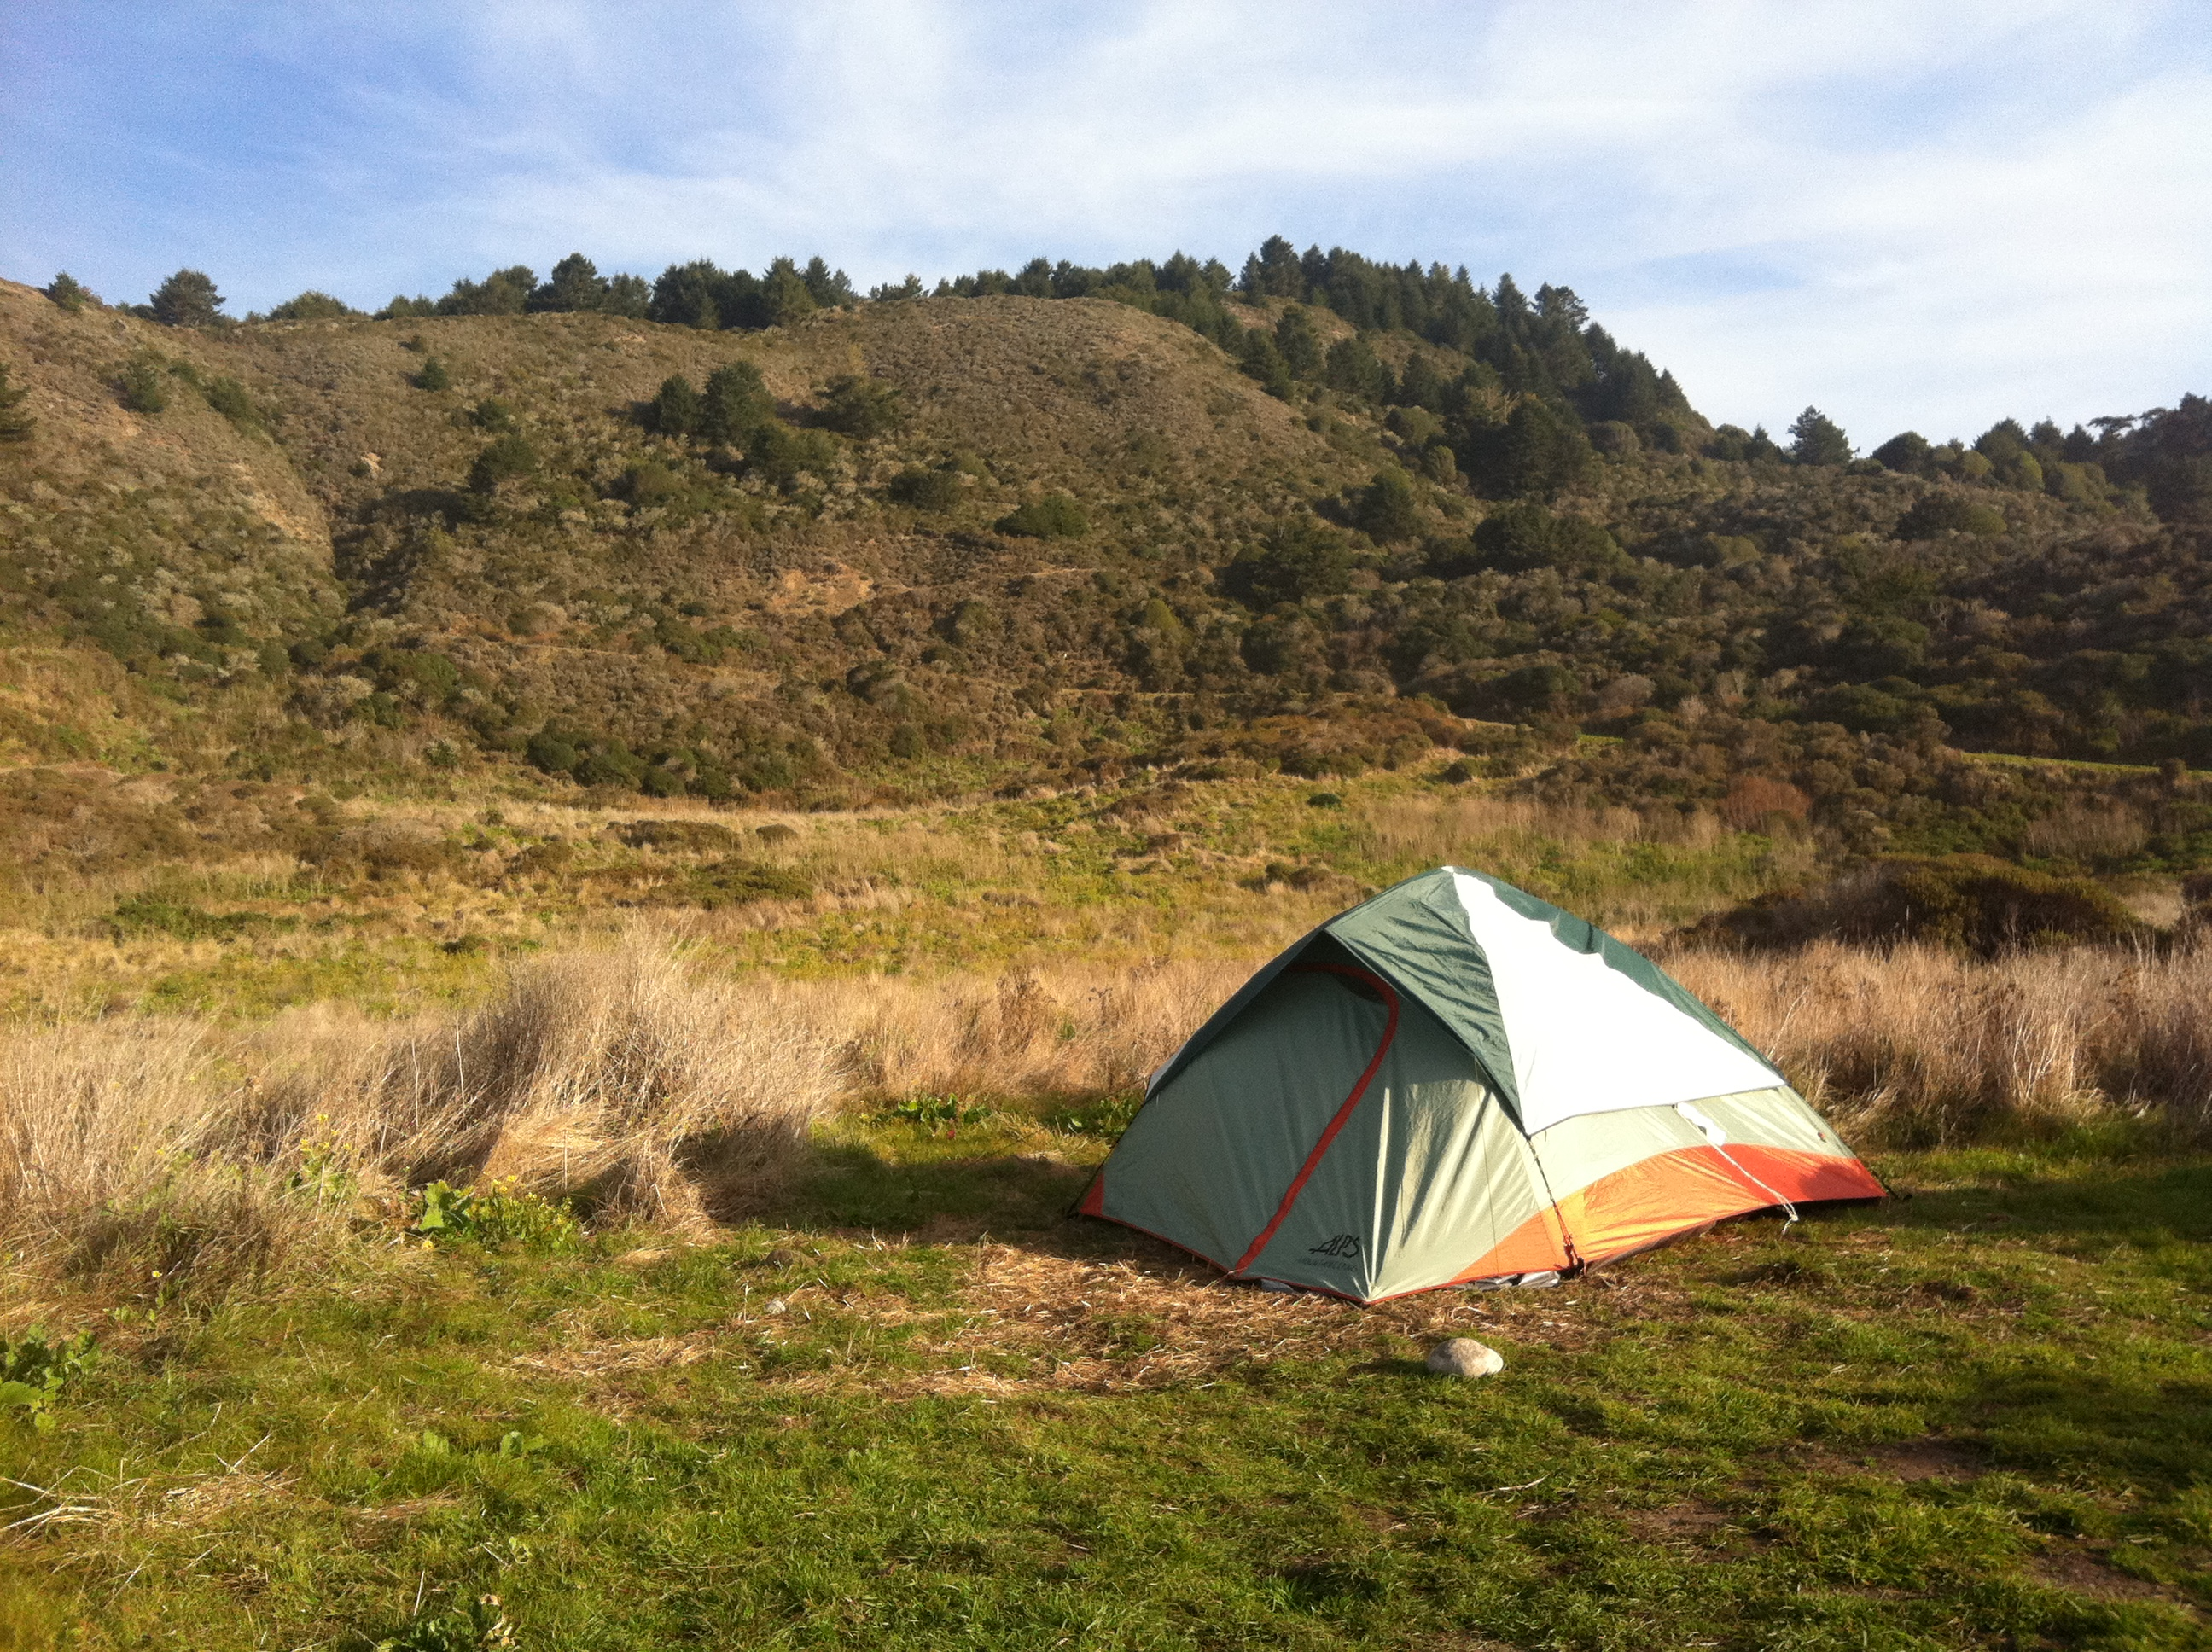 norcalcampingwithkids